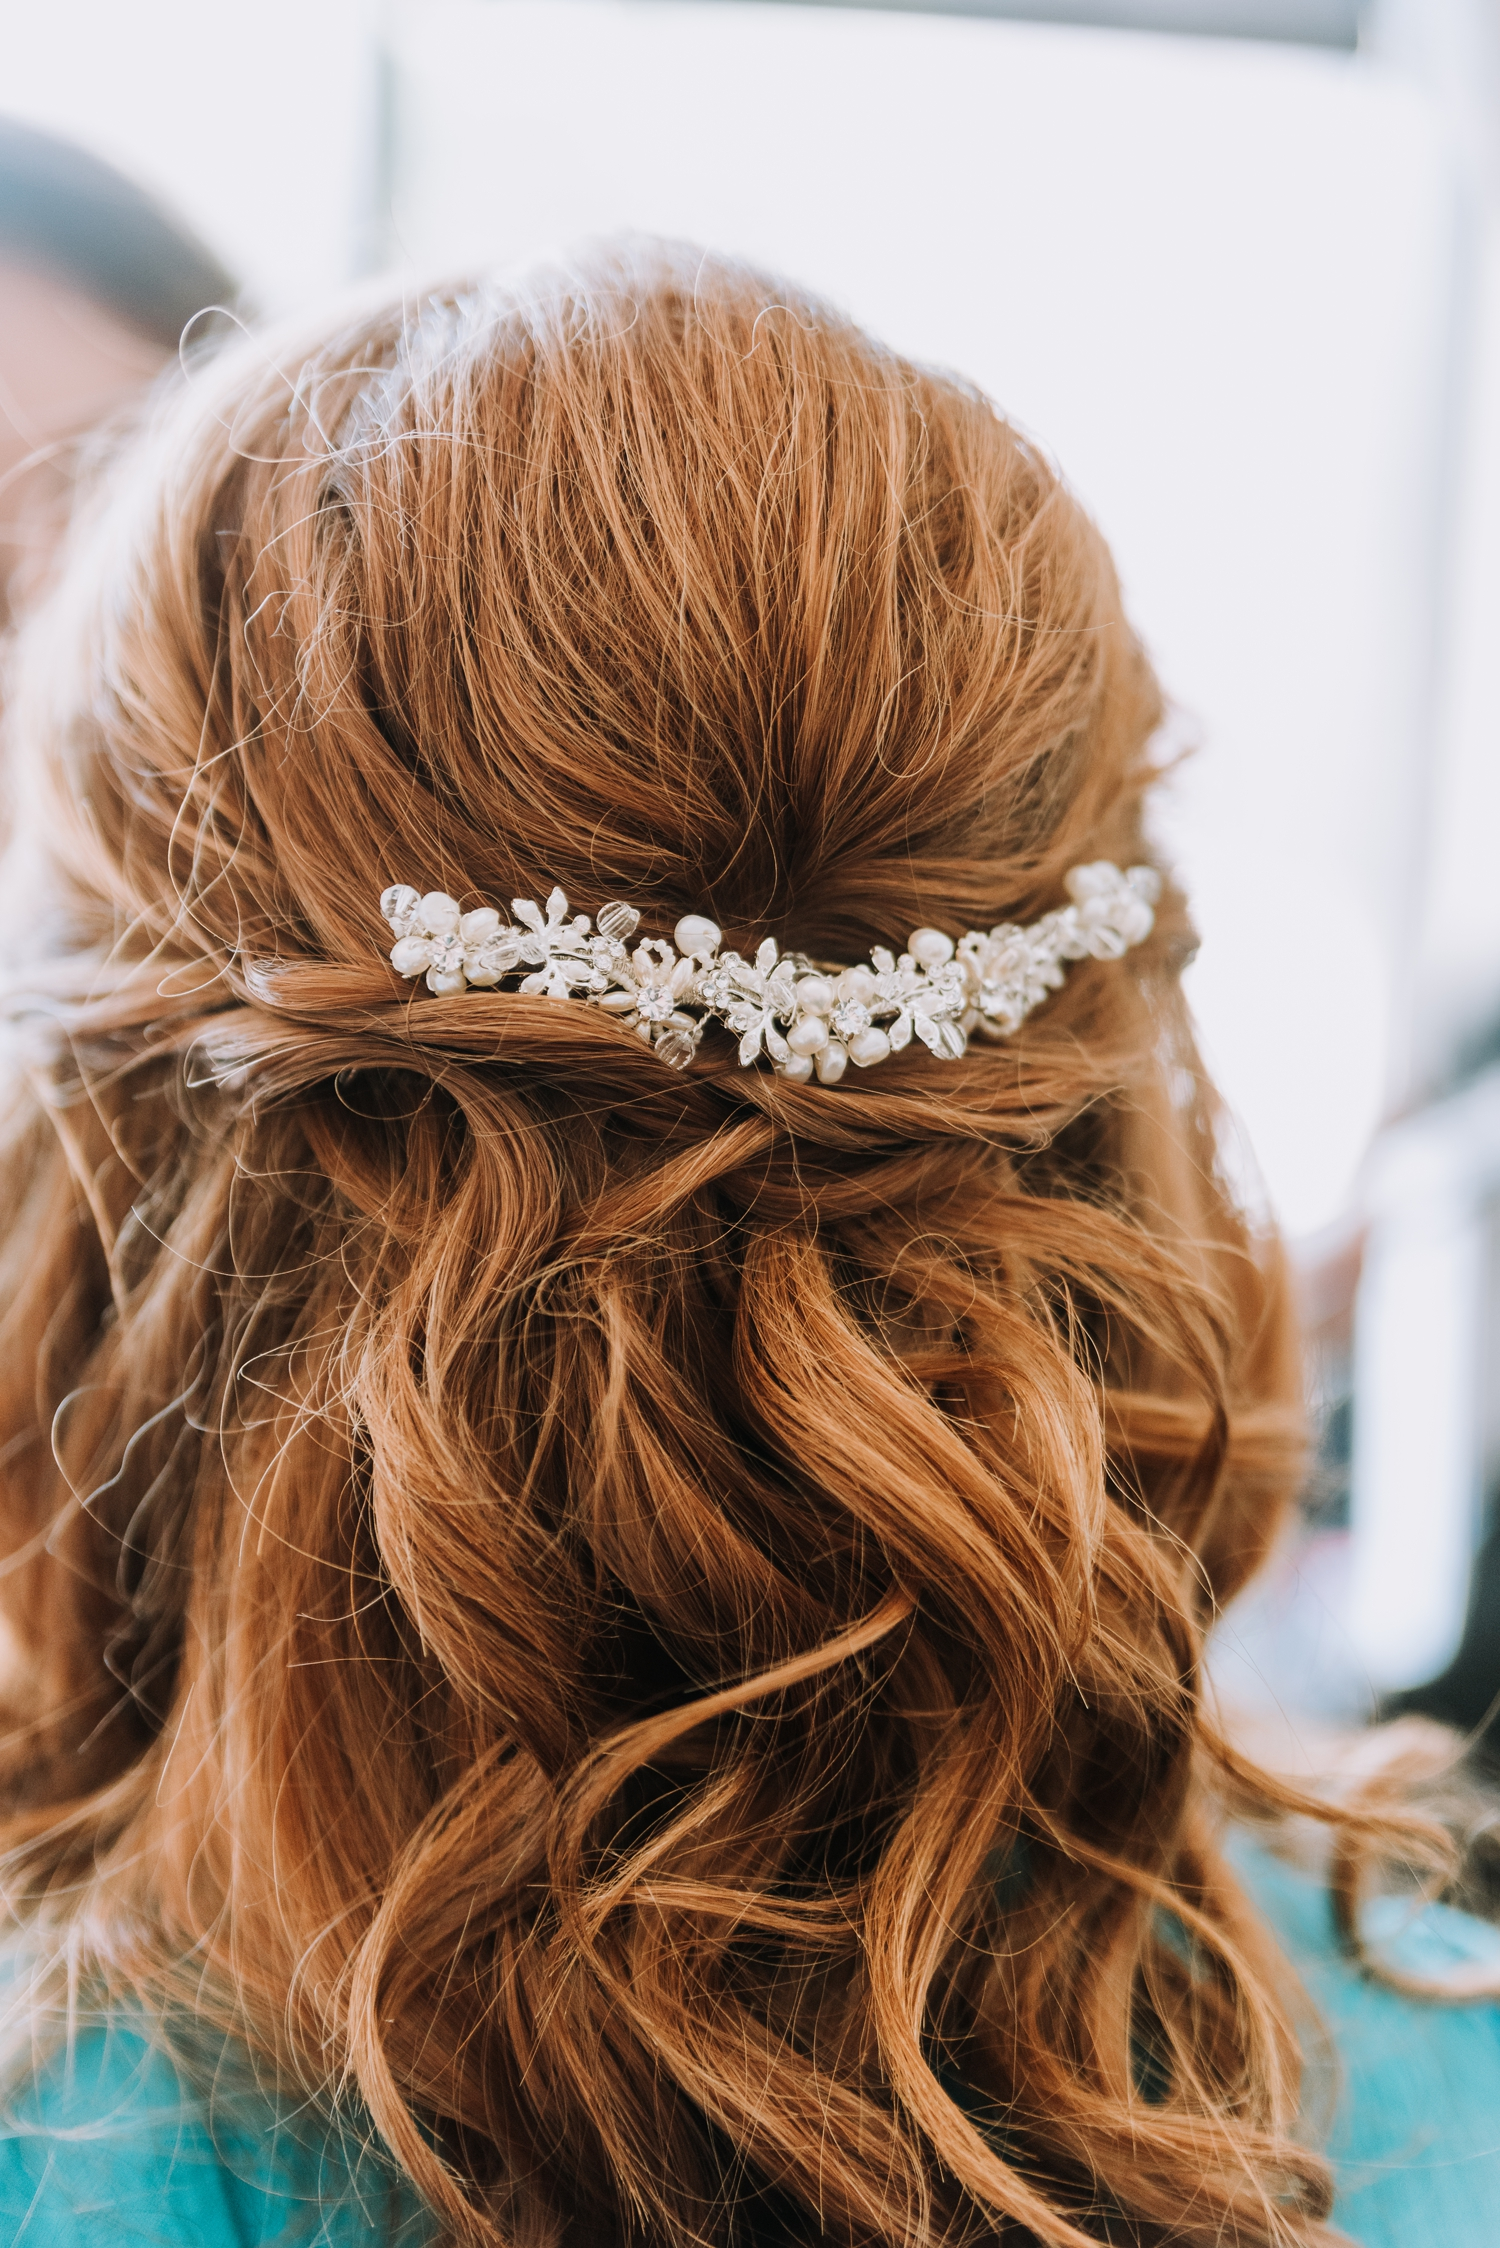 Gorgeous Bridal Hairstyles - Classic Indianapolis Wedding - Canal 337 Wedding - The Overwhelmed Bride Wedding Blog